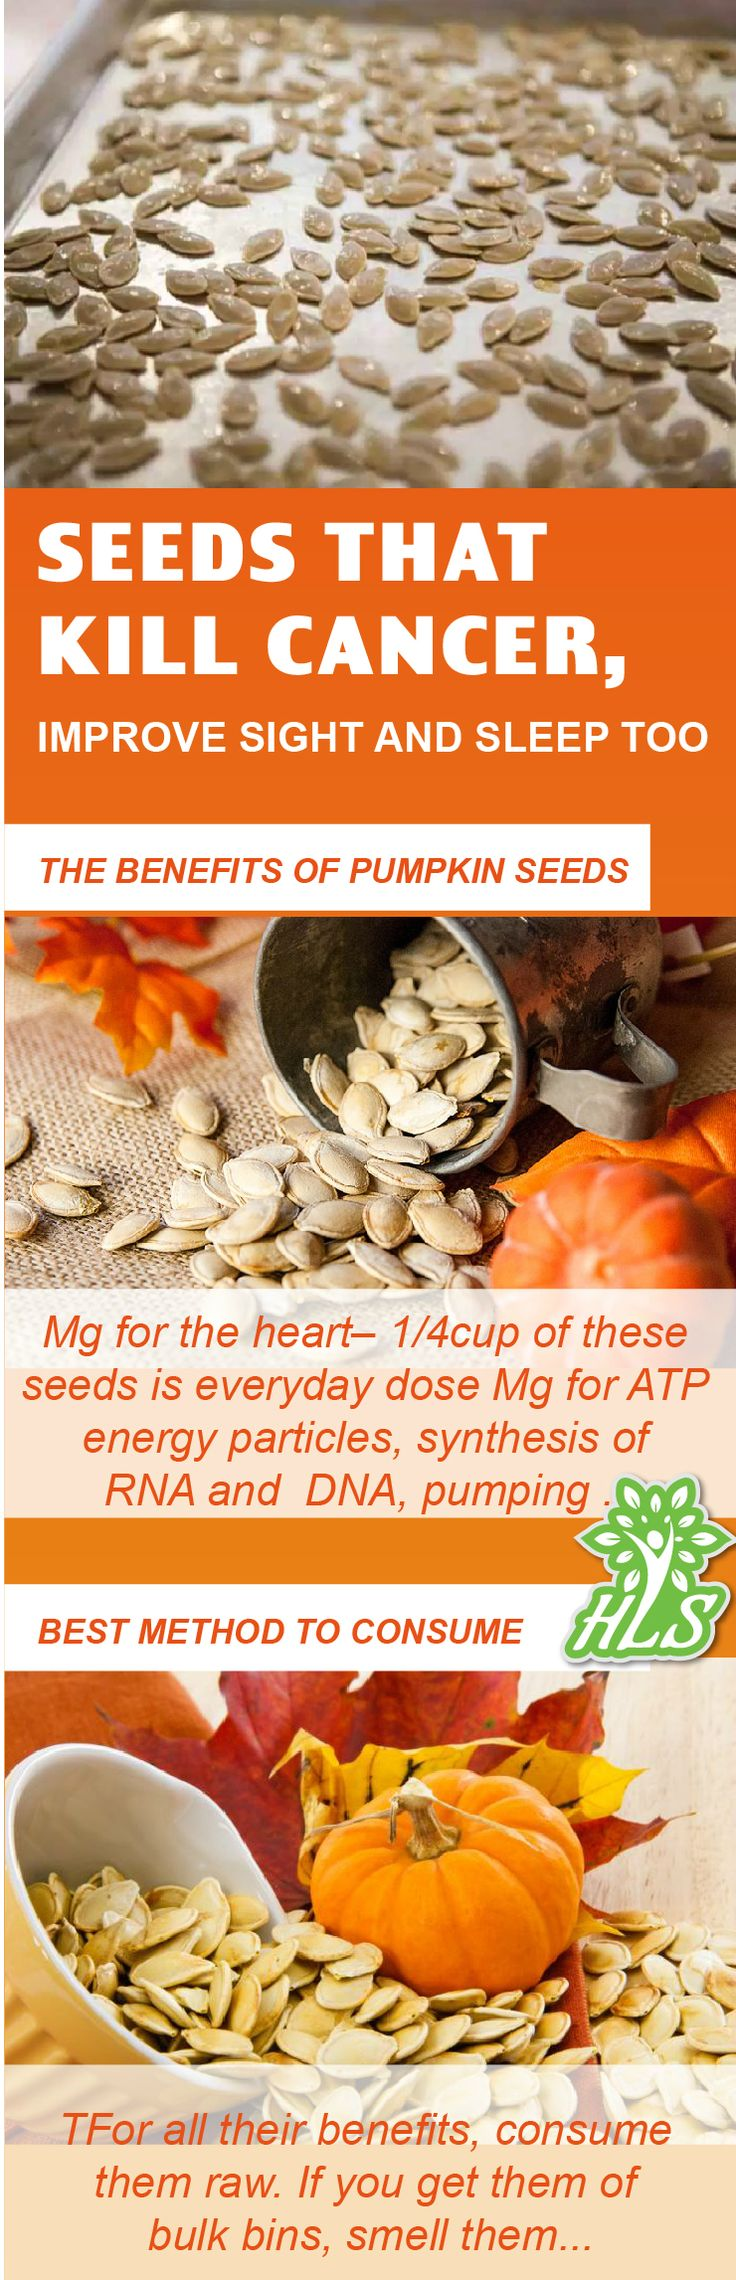 If you desire a chewy snack, get pumpkin seeds. They have many great products like copper, zinc, magnesium, protein and are power food. They also have totally free extreme battling agents and phytosterols for the health. They have fibers so aid digestion and they have 1000 calories per 50 g. No have to keep them…